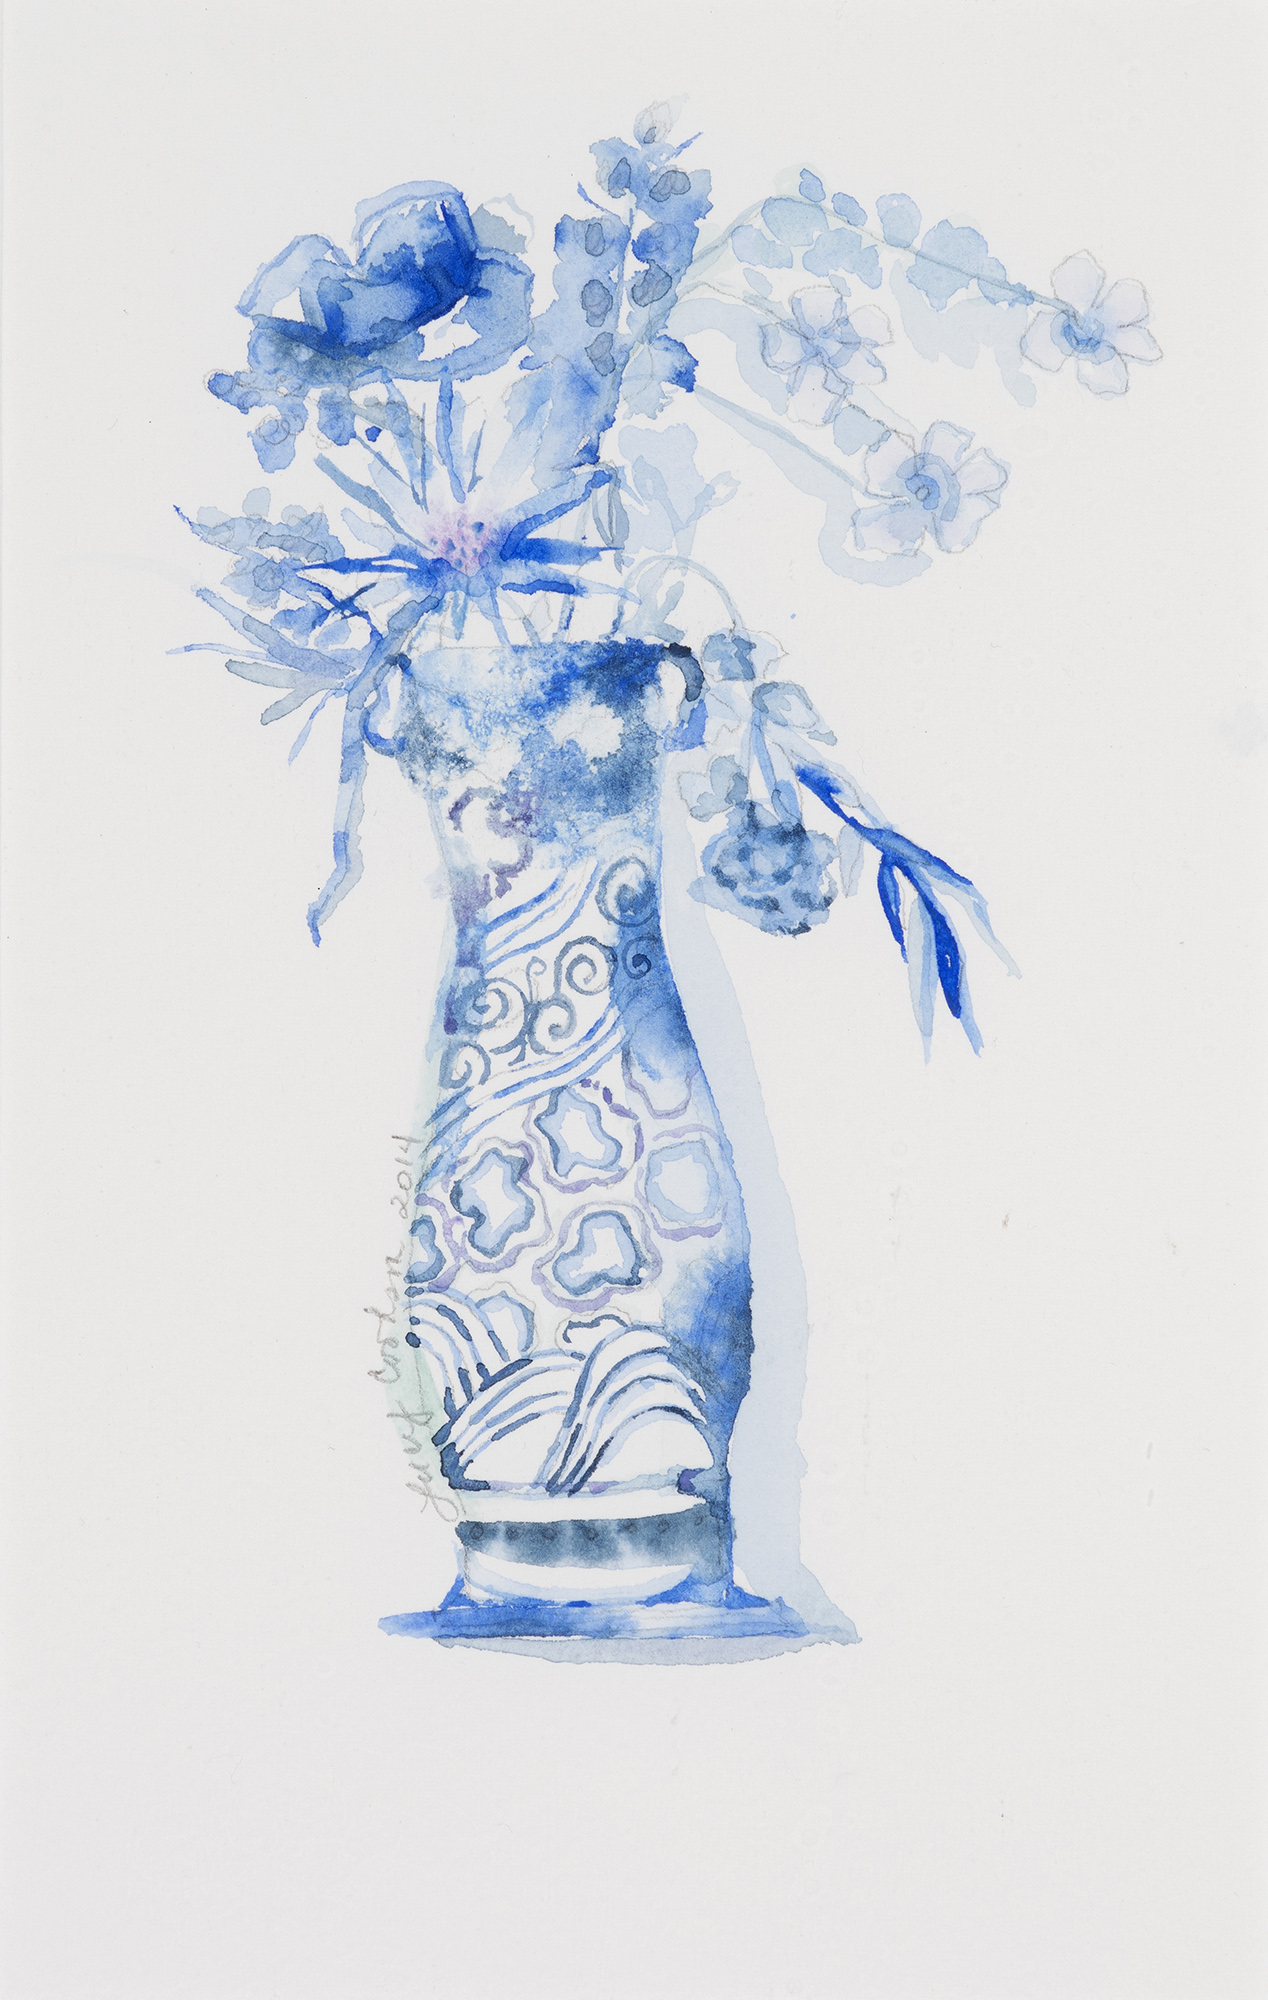 Blue Series I, 2014, Watercolor on paper, 17 x 13 in.